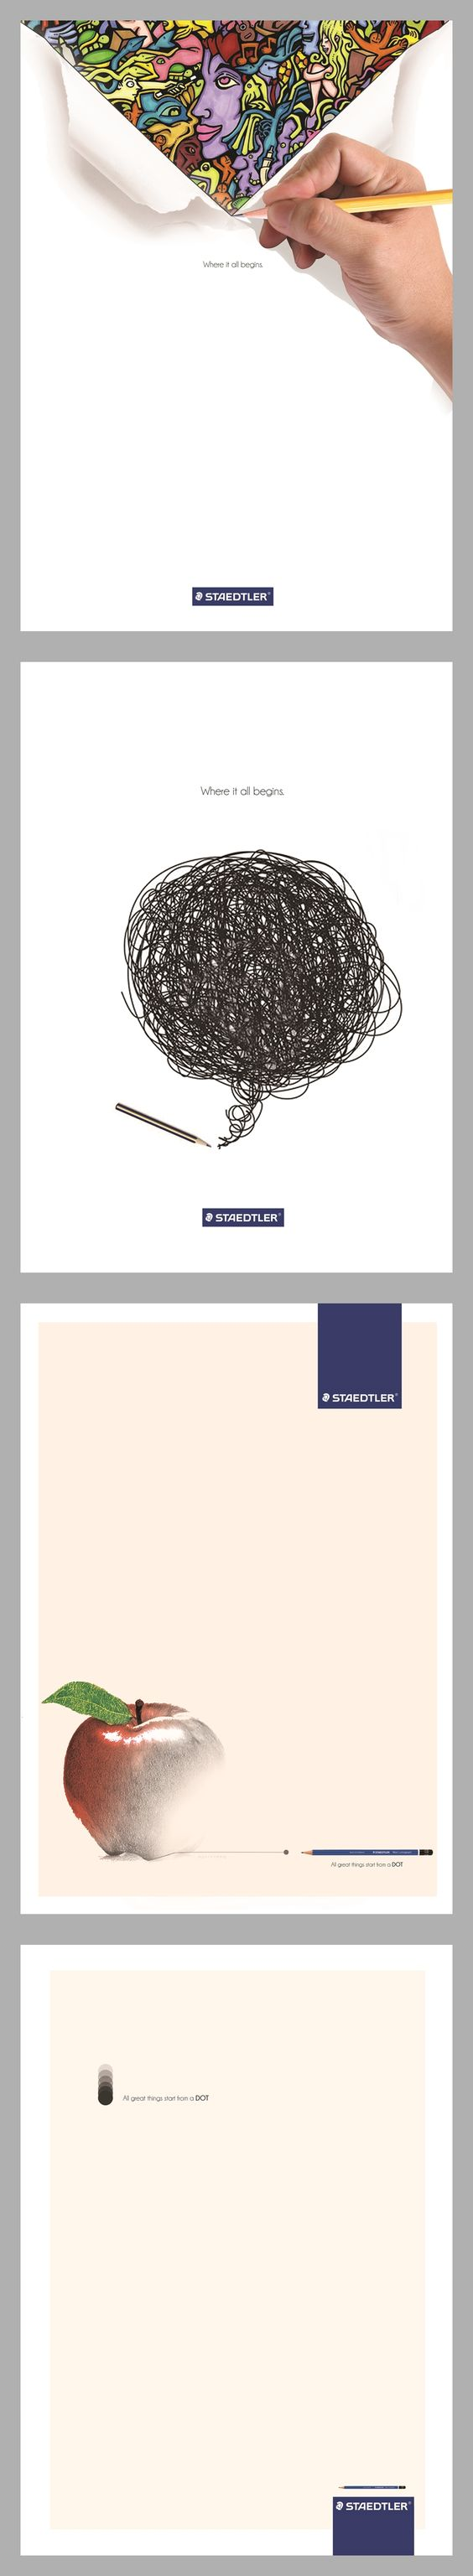 Conceptual poster designs of the #pencil brand #STAEDTLER.